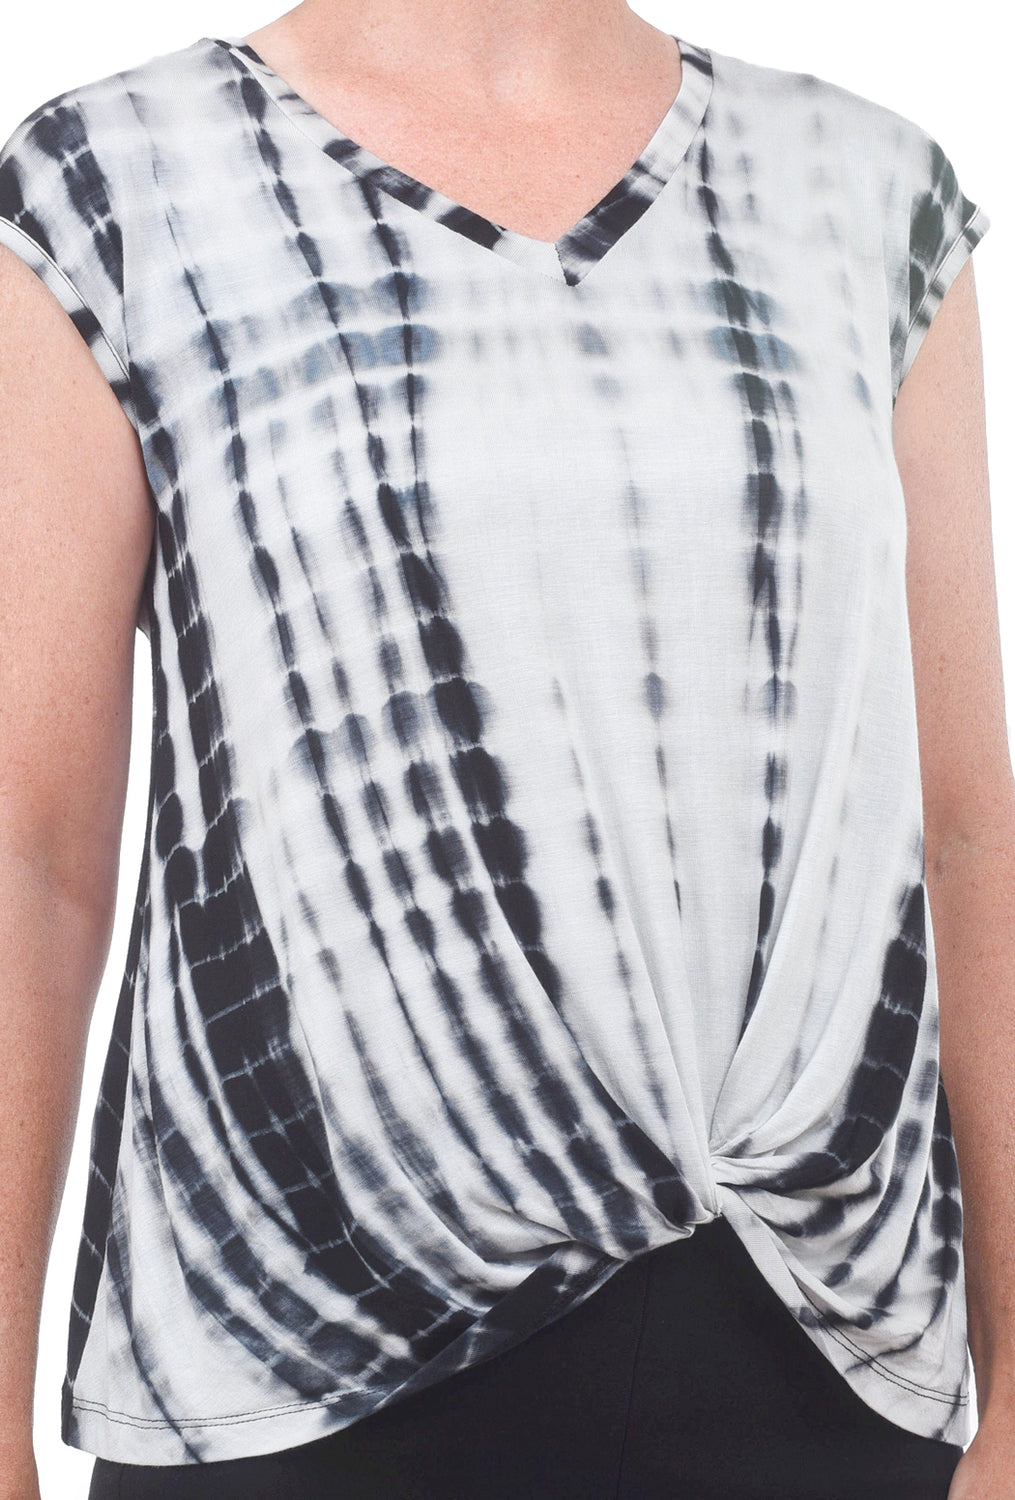 Coin1804 Tie-Dye Twist Front Top, Black Multi